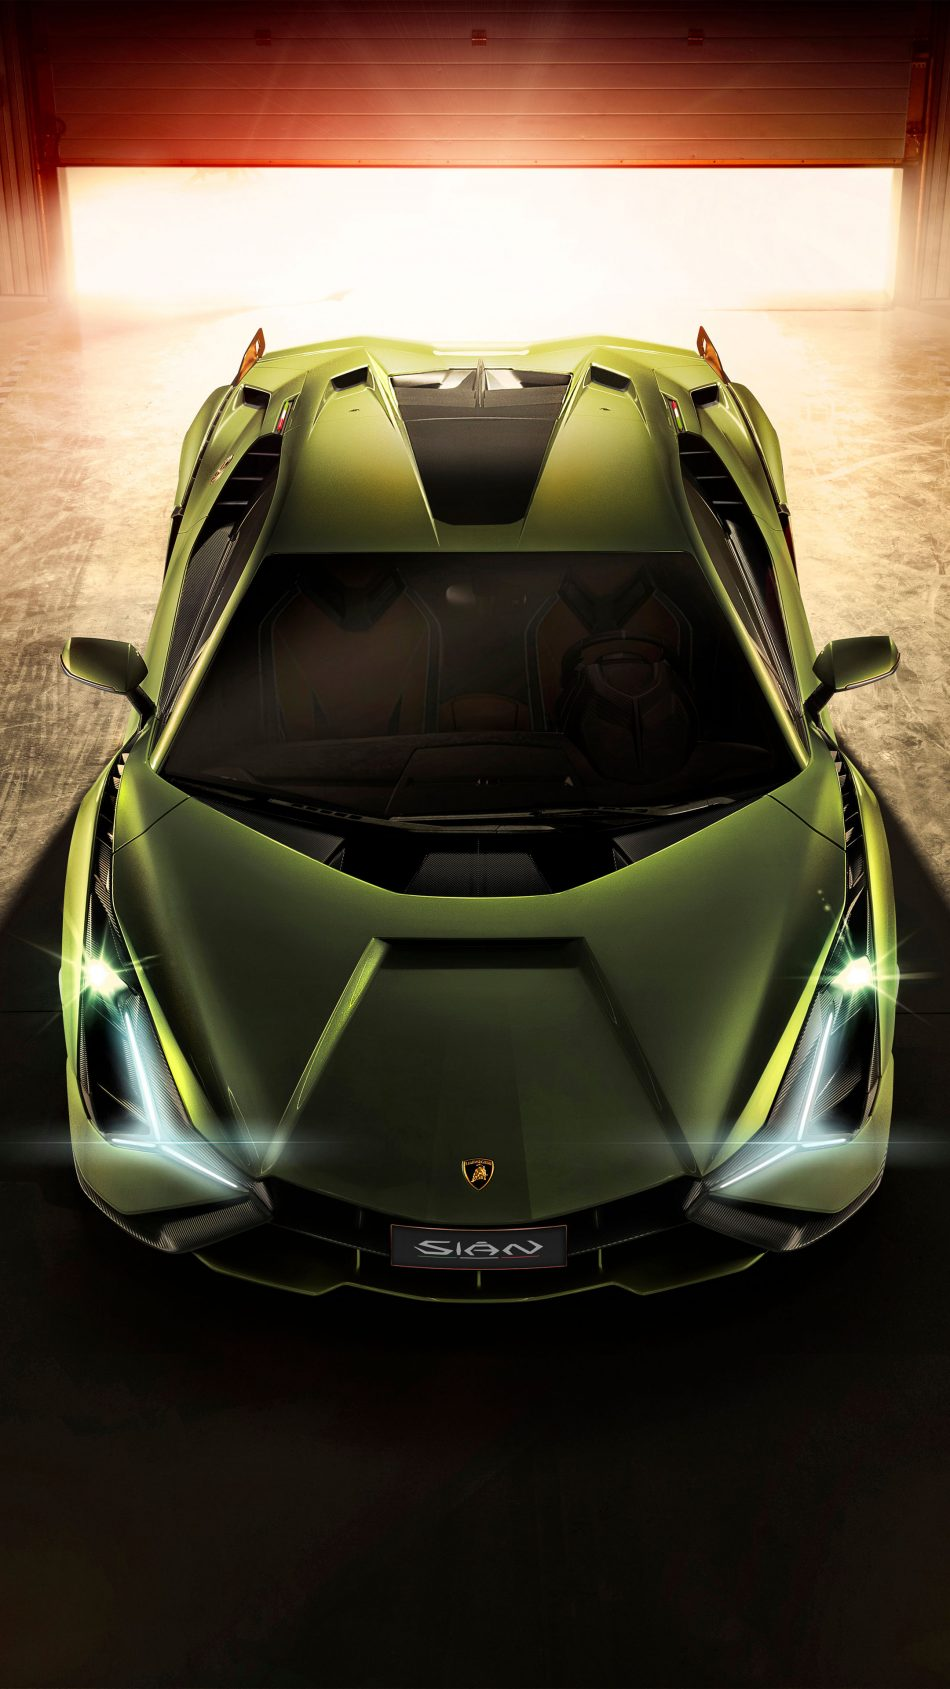 Lamborghini Sian 2019 4K Ultra HD Mobile Wallpaper